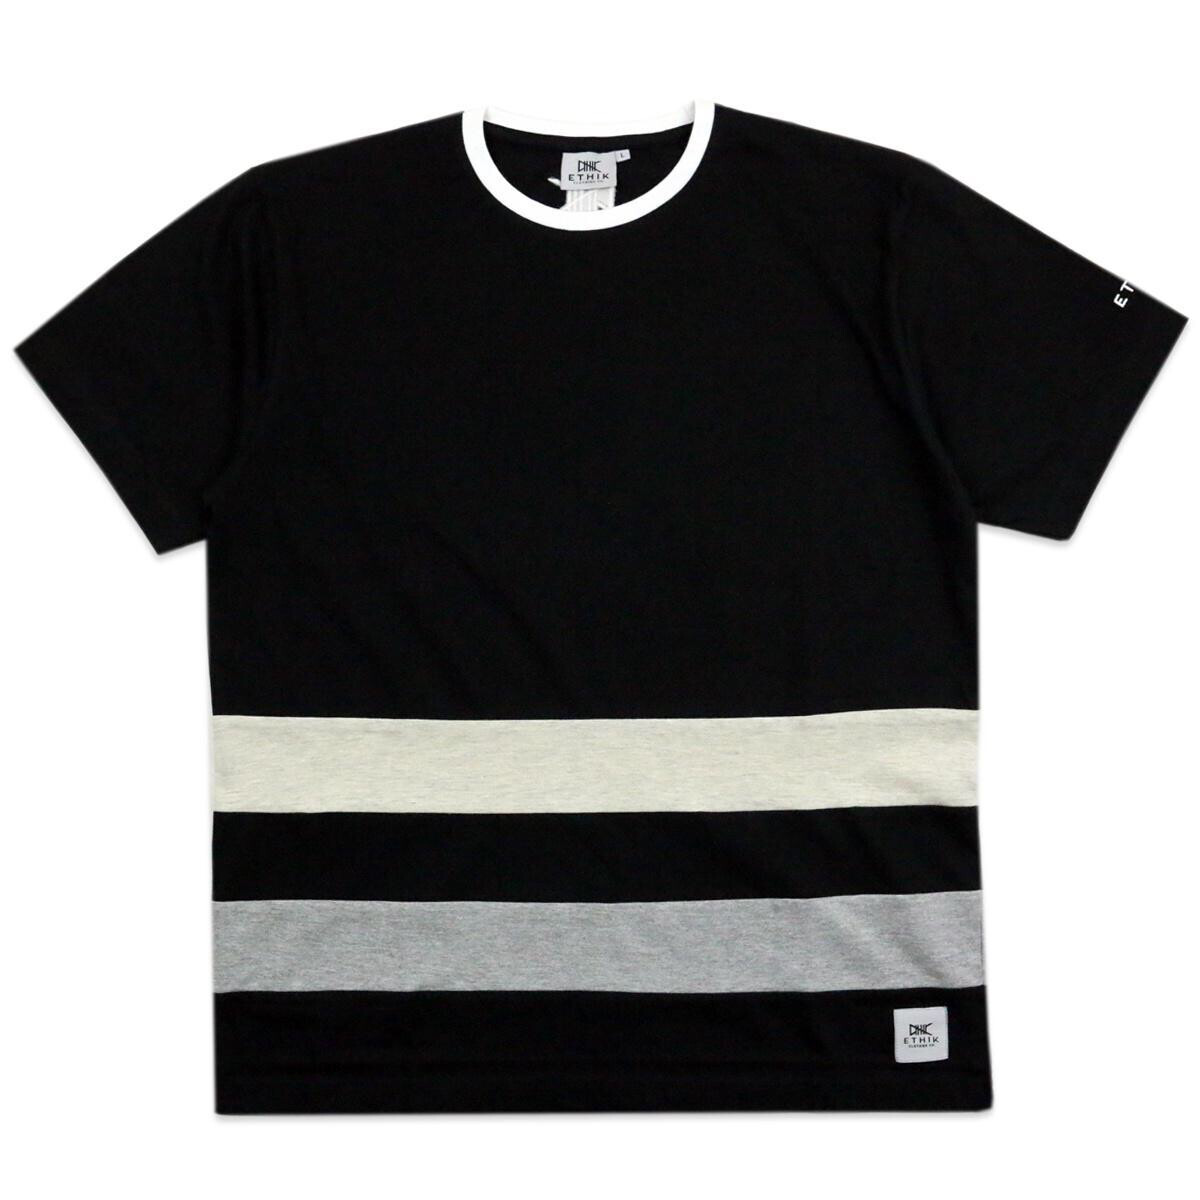 Black with Grey Line tee